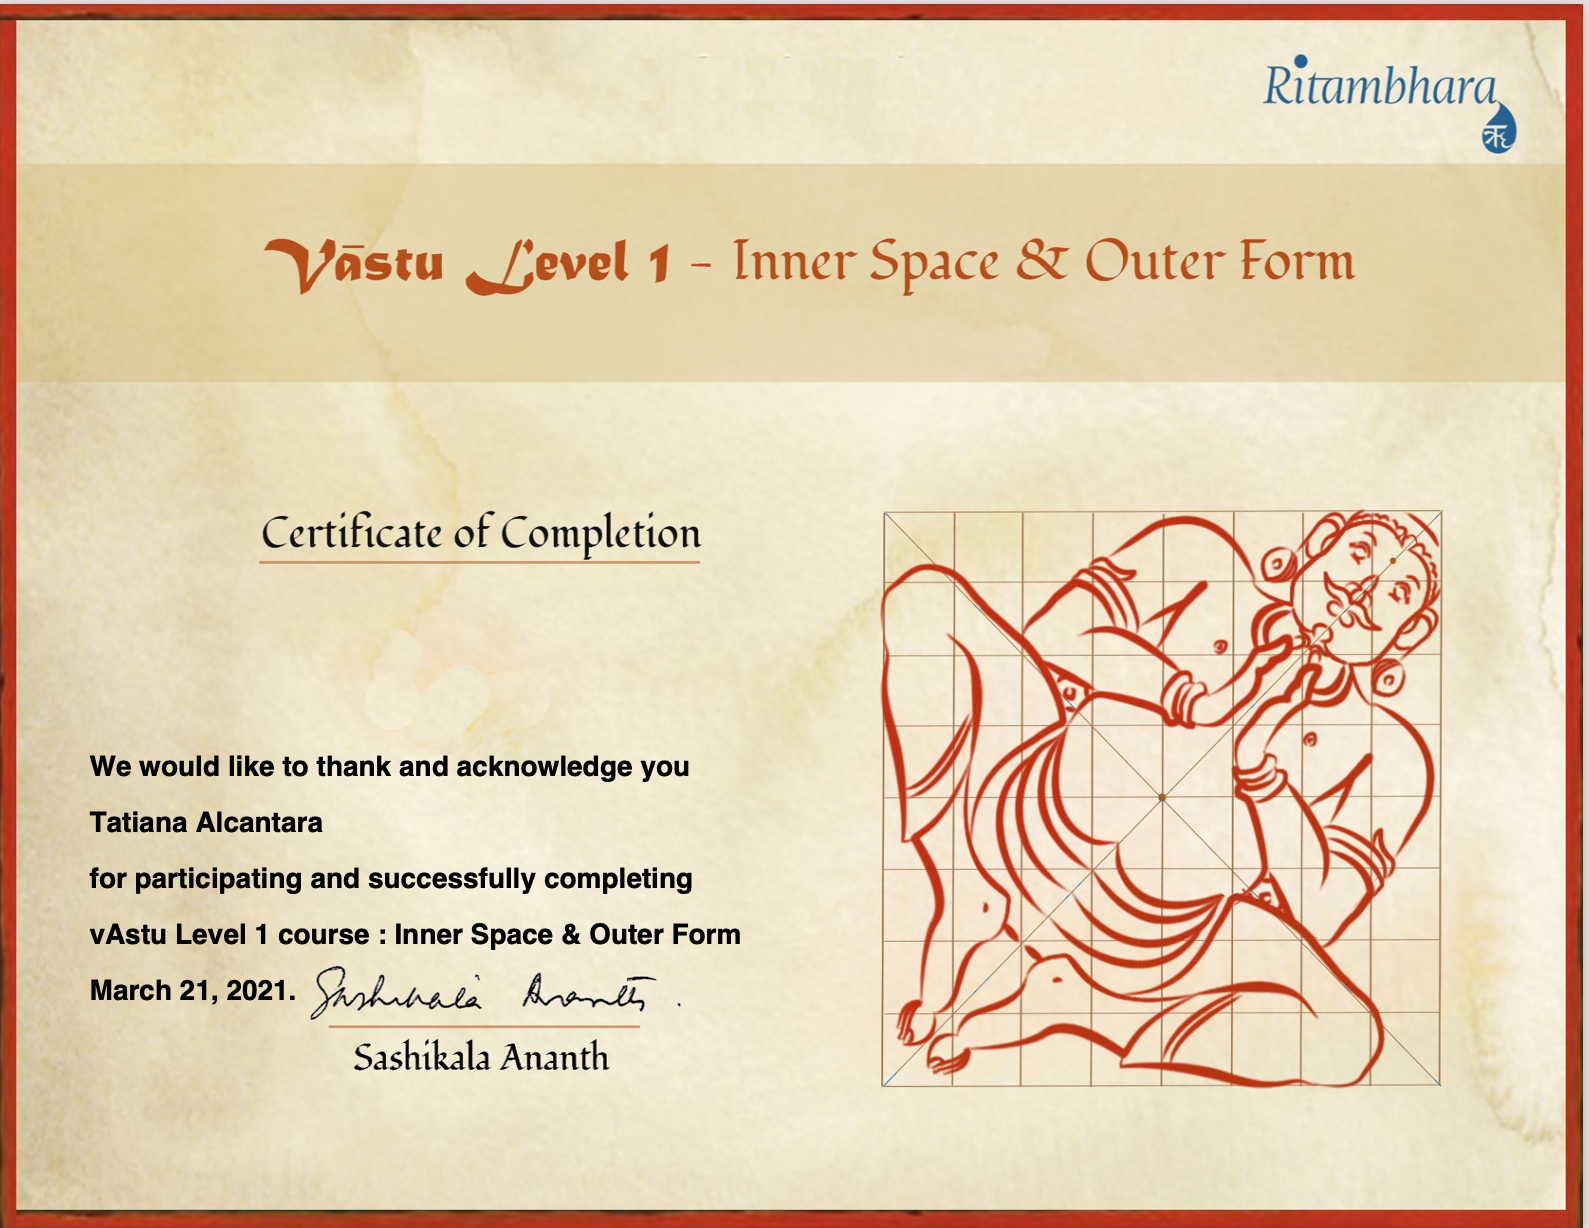 vAstu Course Level 1 - Inner-Space & Outer From